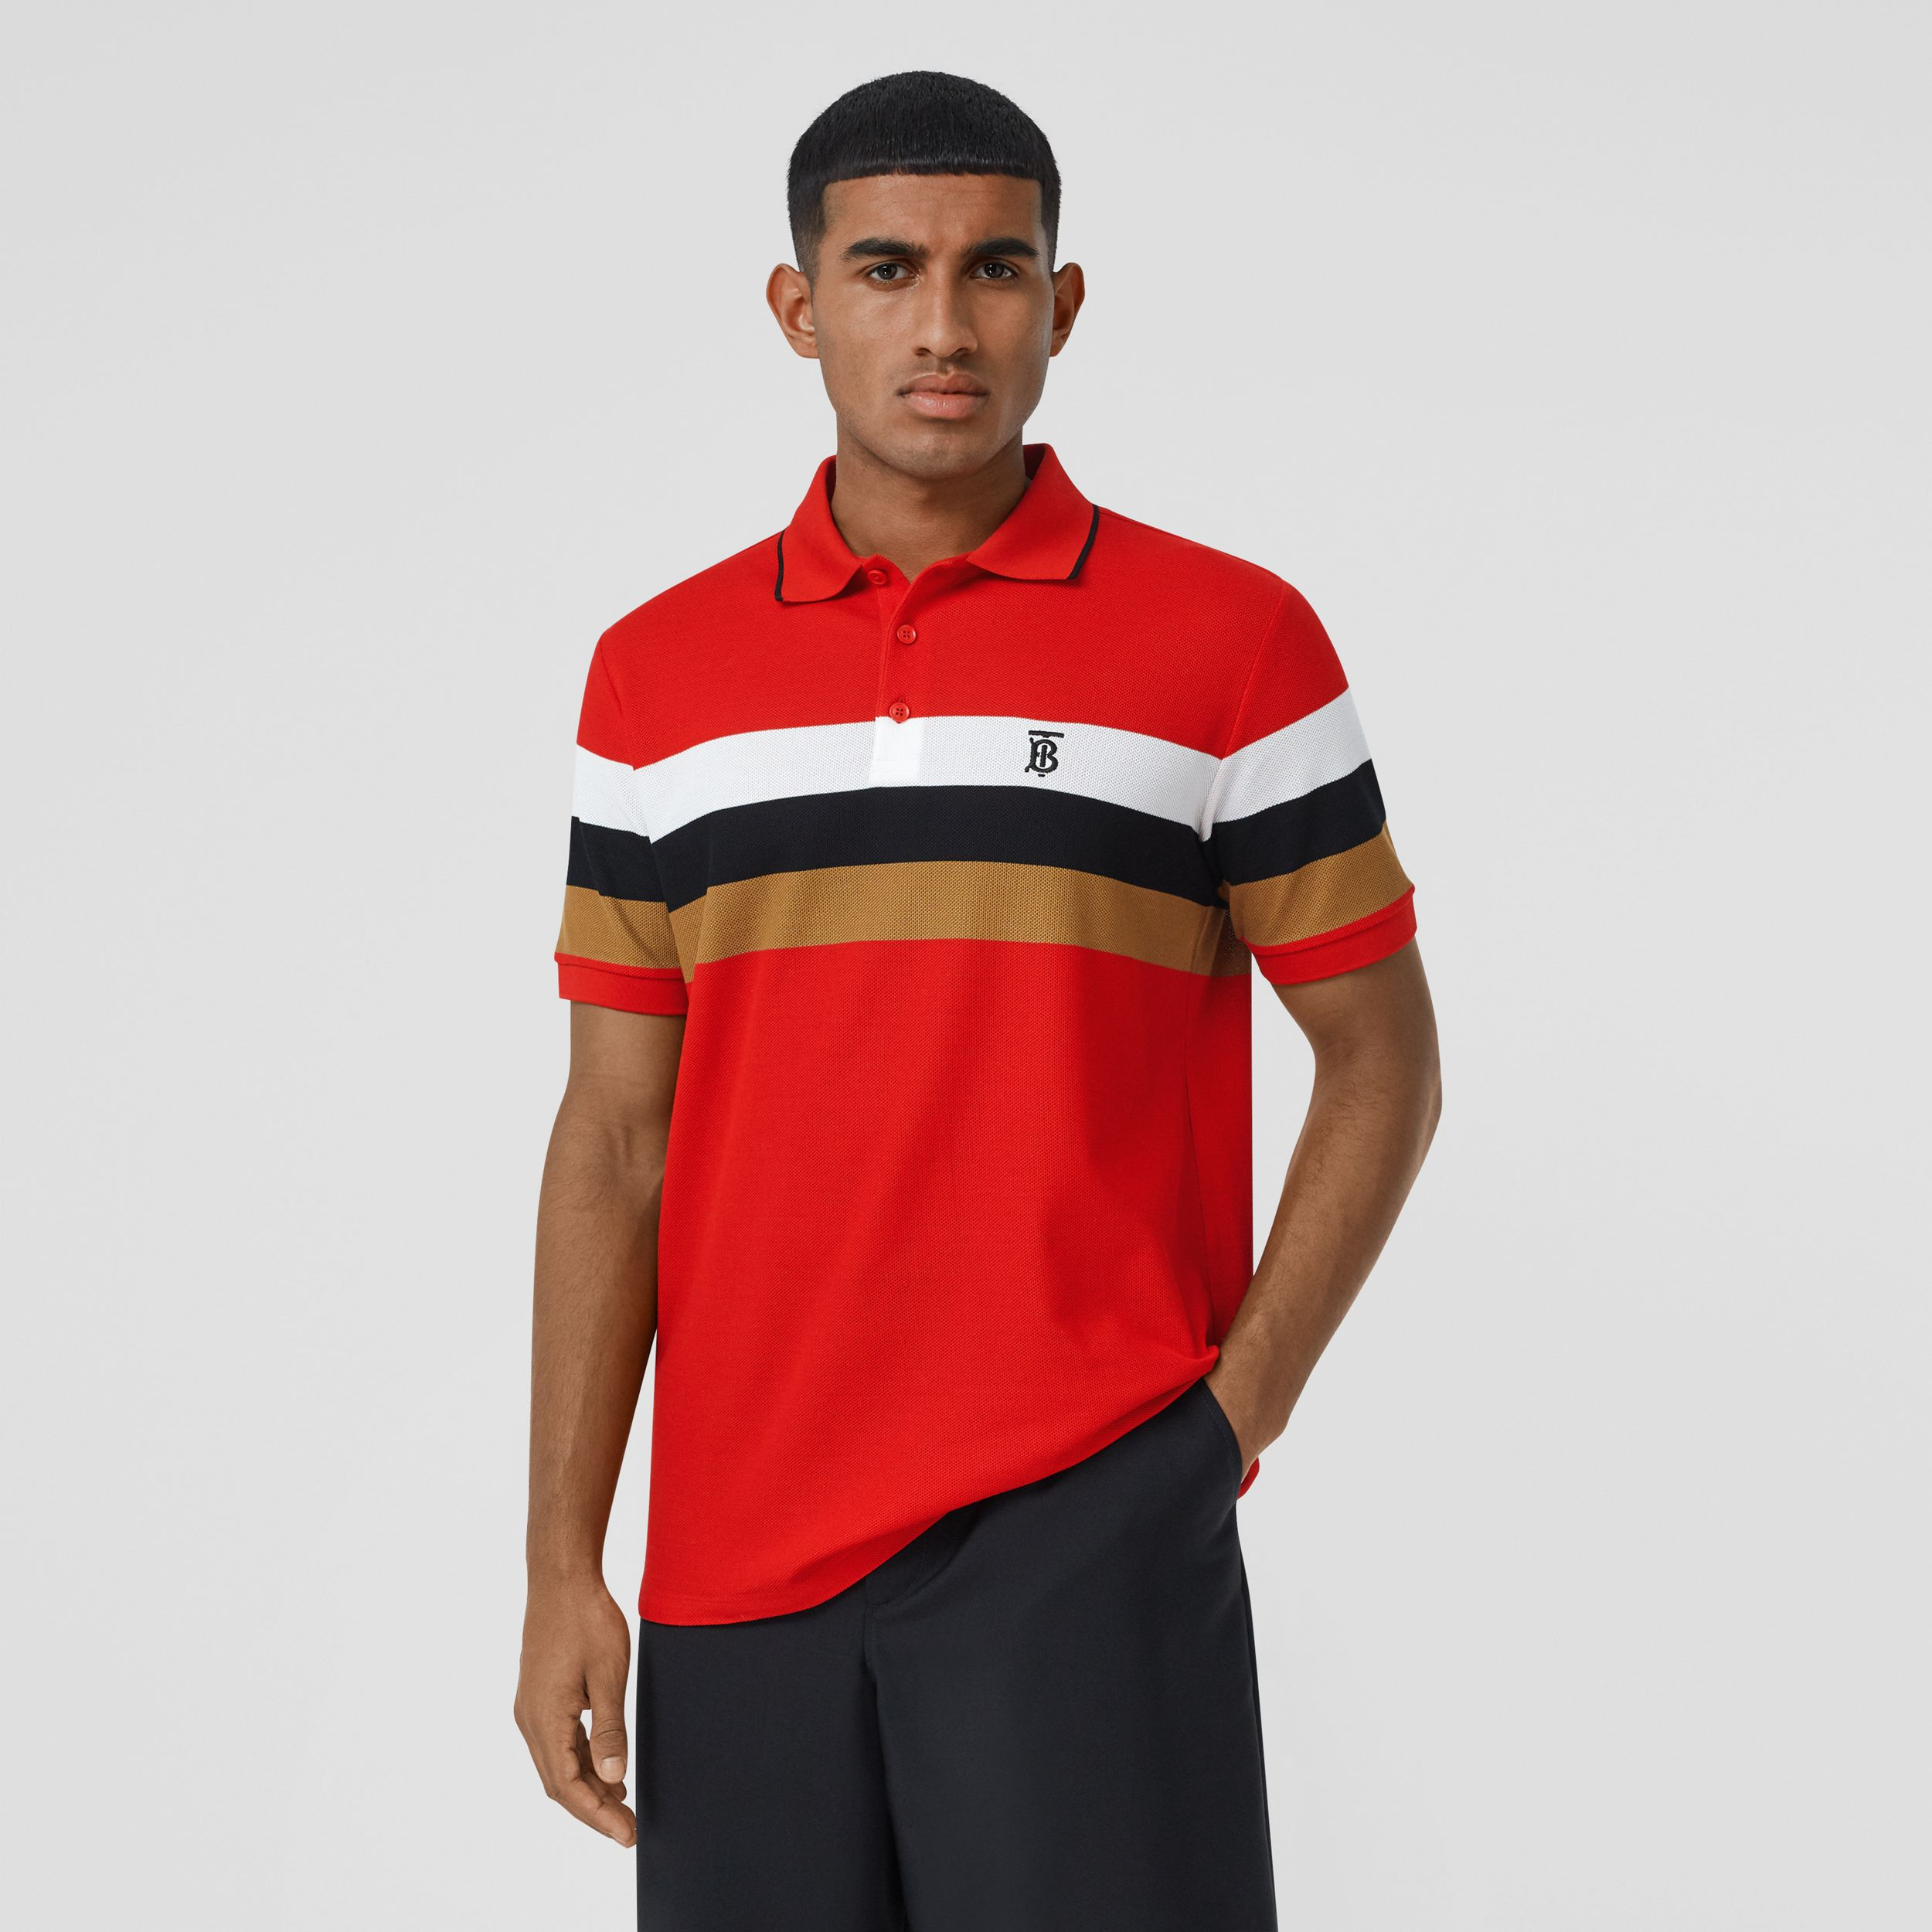 Monogram Motif Striped Cotton Polo Shirt in Bright Red - Men | Burberry - 1